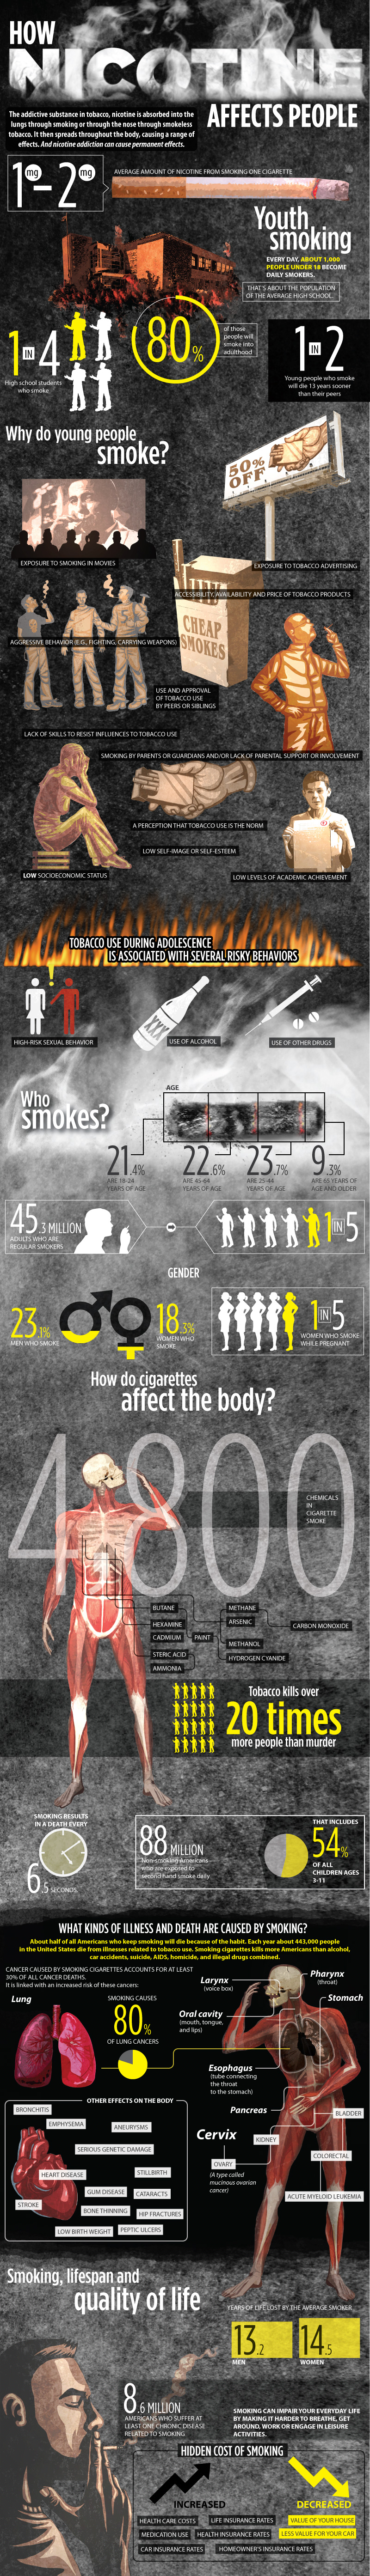 Nicotine - The Effects and Consequences